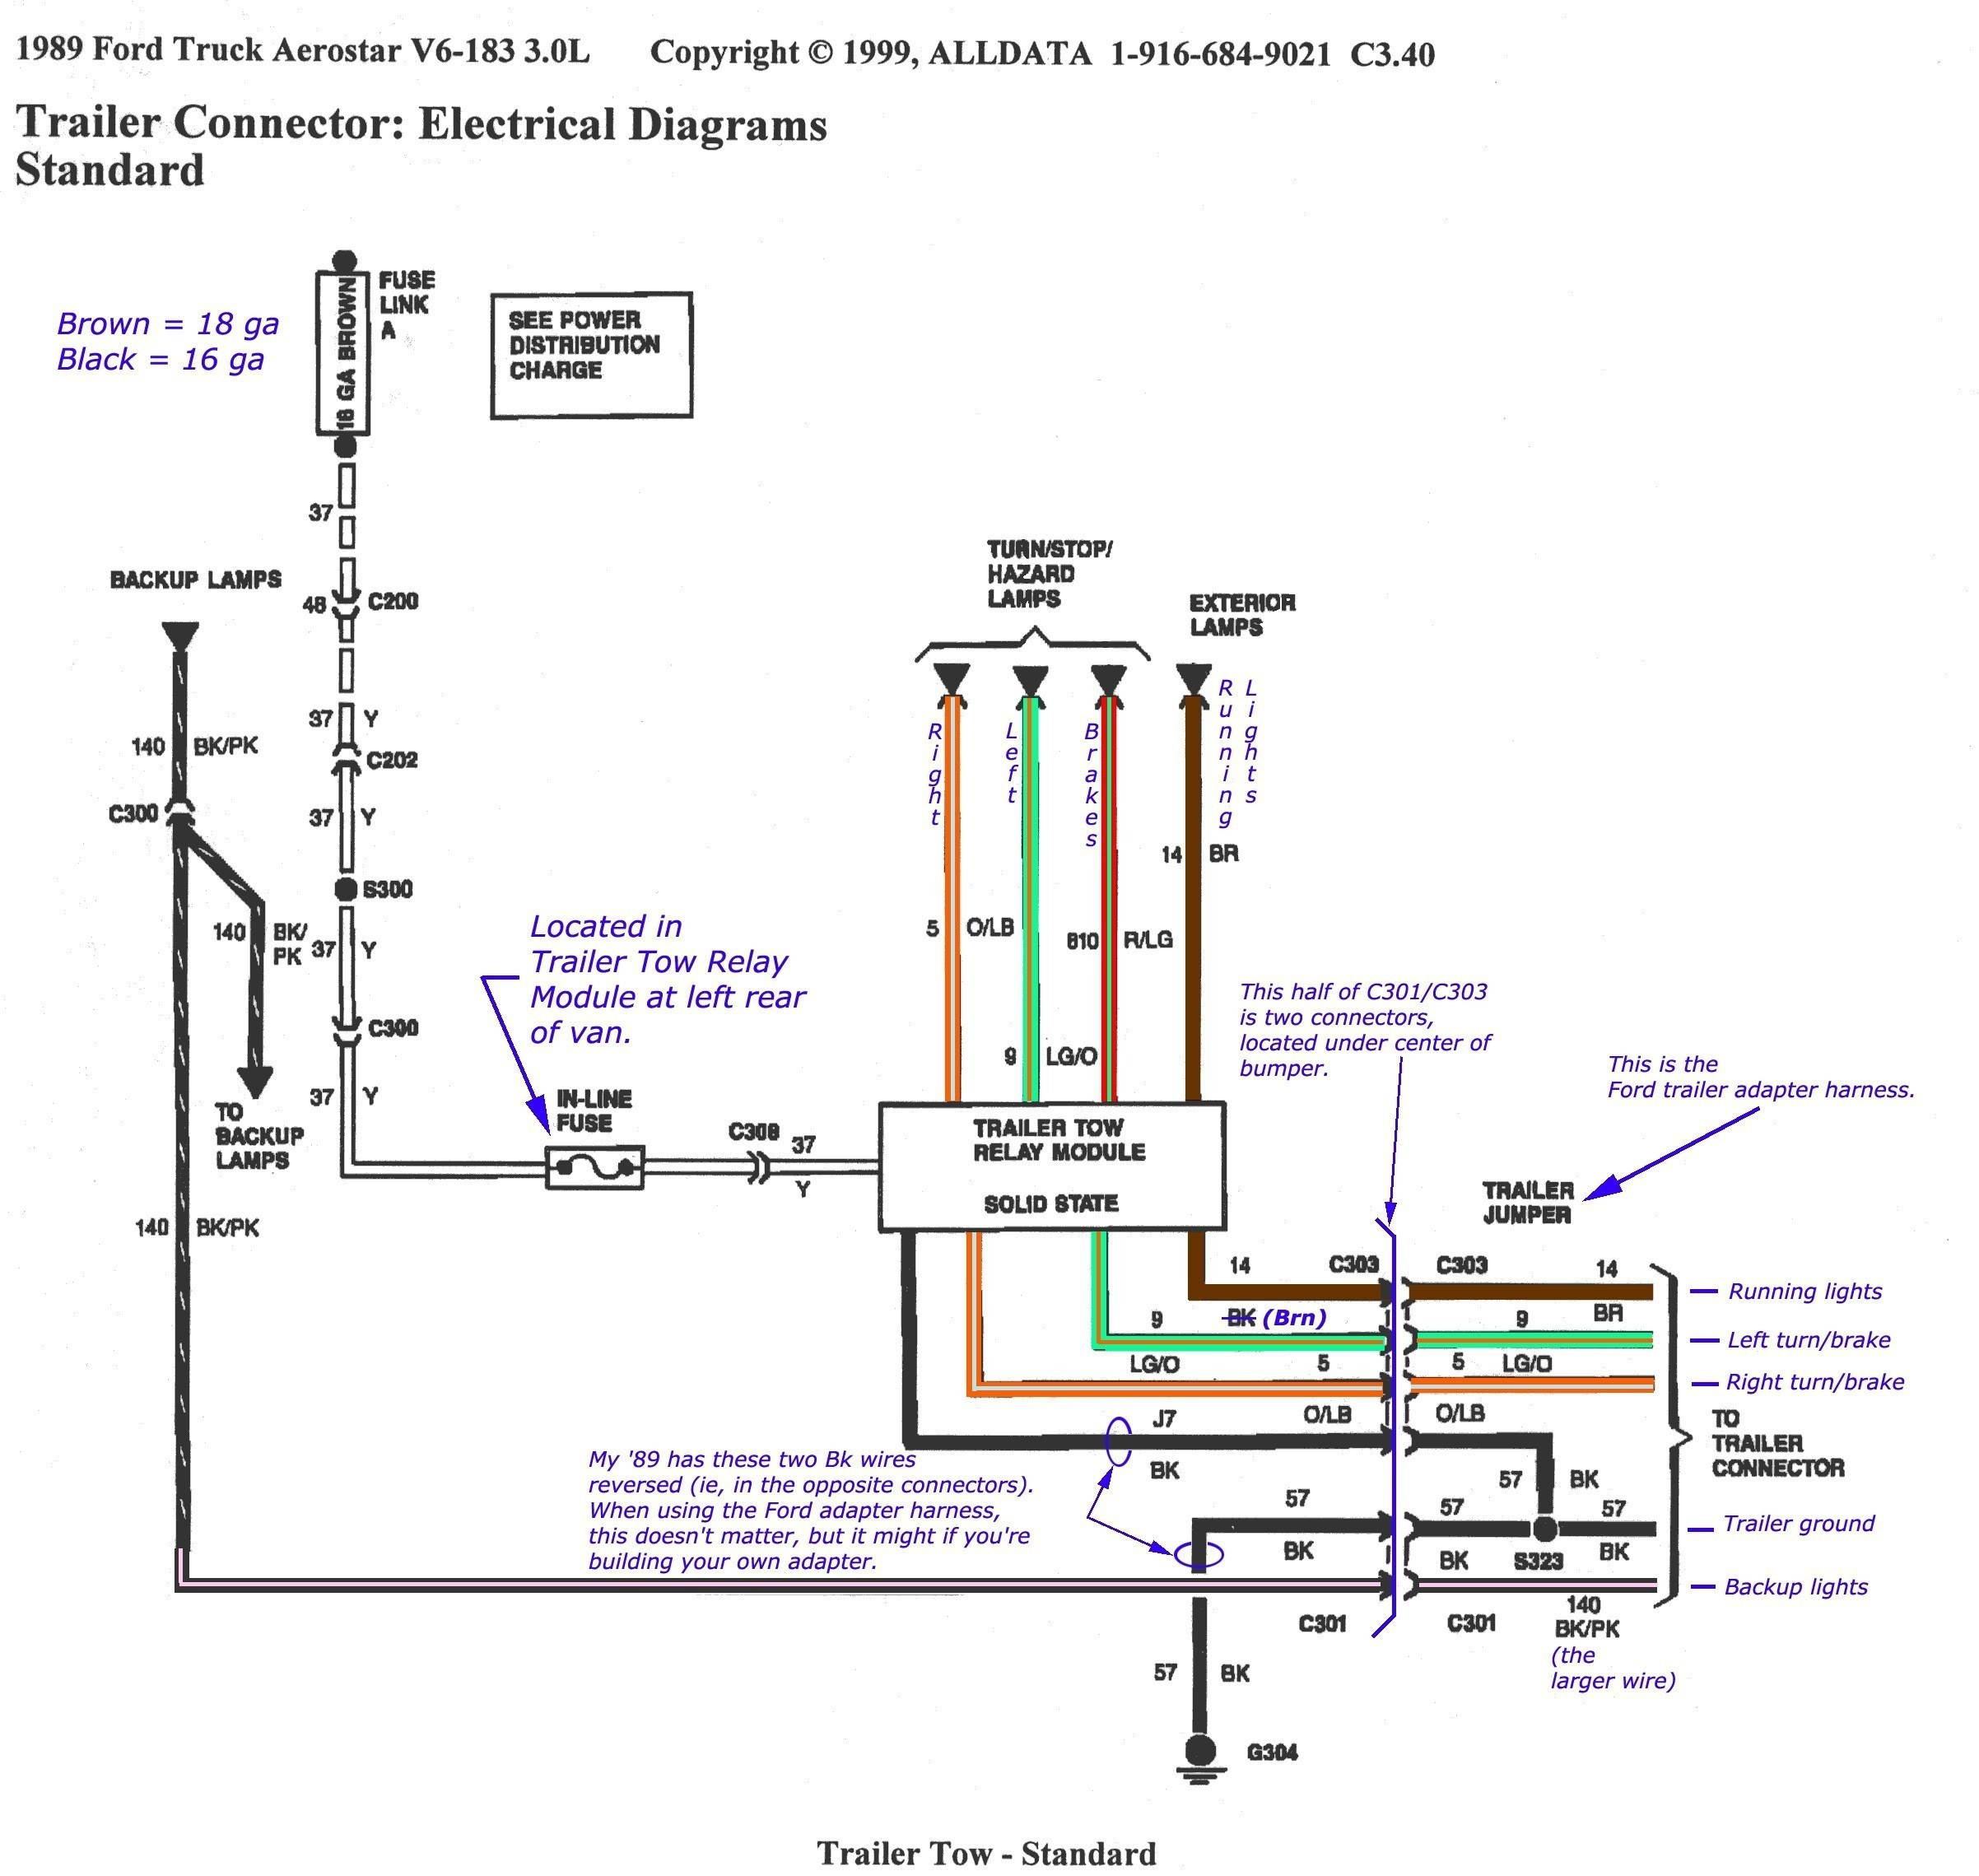 Hudson Trailer Wiring Diagram | Wiring Diagram - Hudson Trailer Wiring Diagram